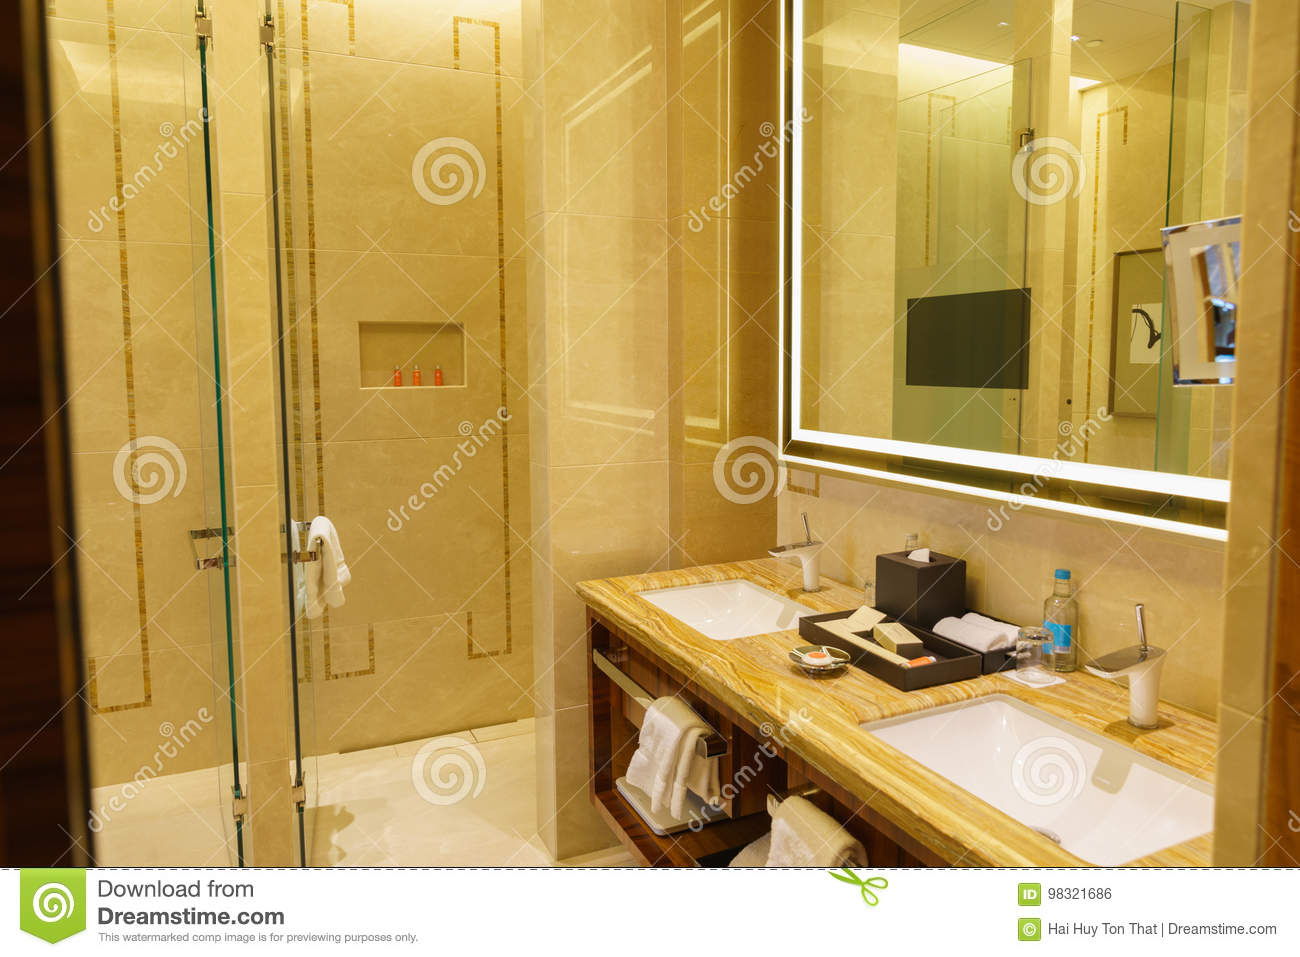 Download Bathroom Interior Of Brand New Luxury Resort Hotel Stock Photo    Image Of Care,